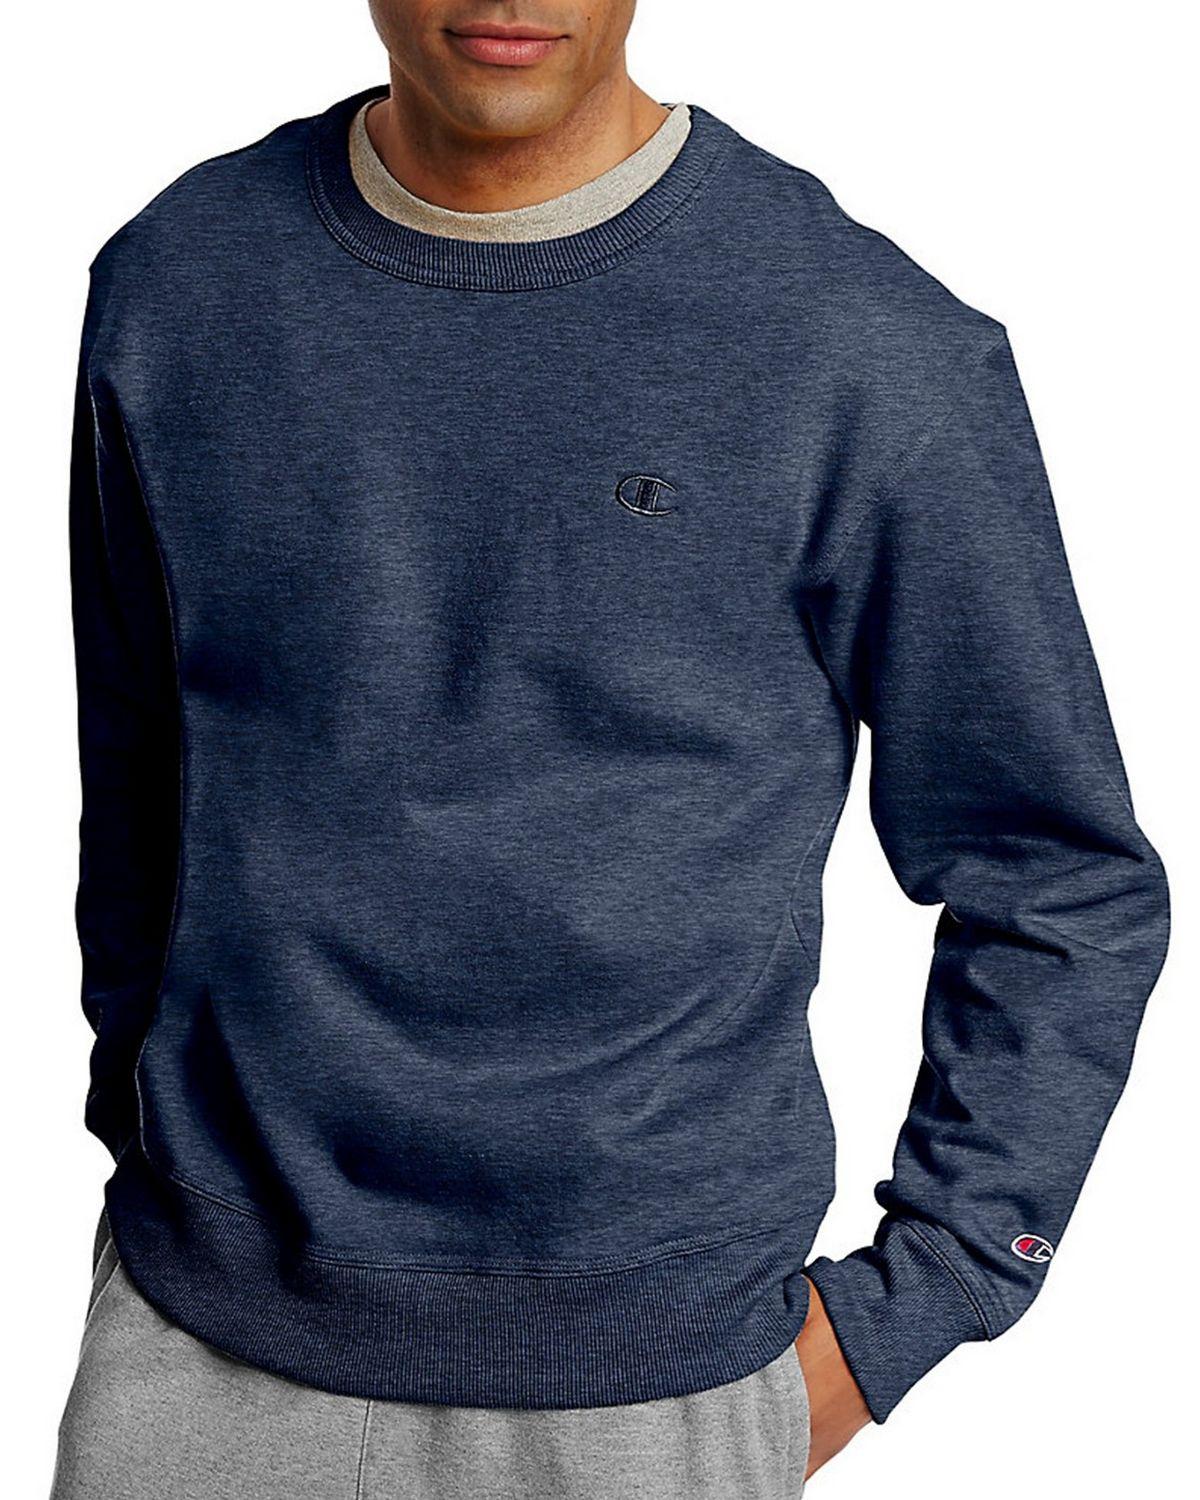 Champion S0888 Mens Fleece Pullover Crew - Granite Heather - S S0888